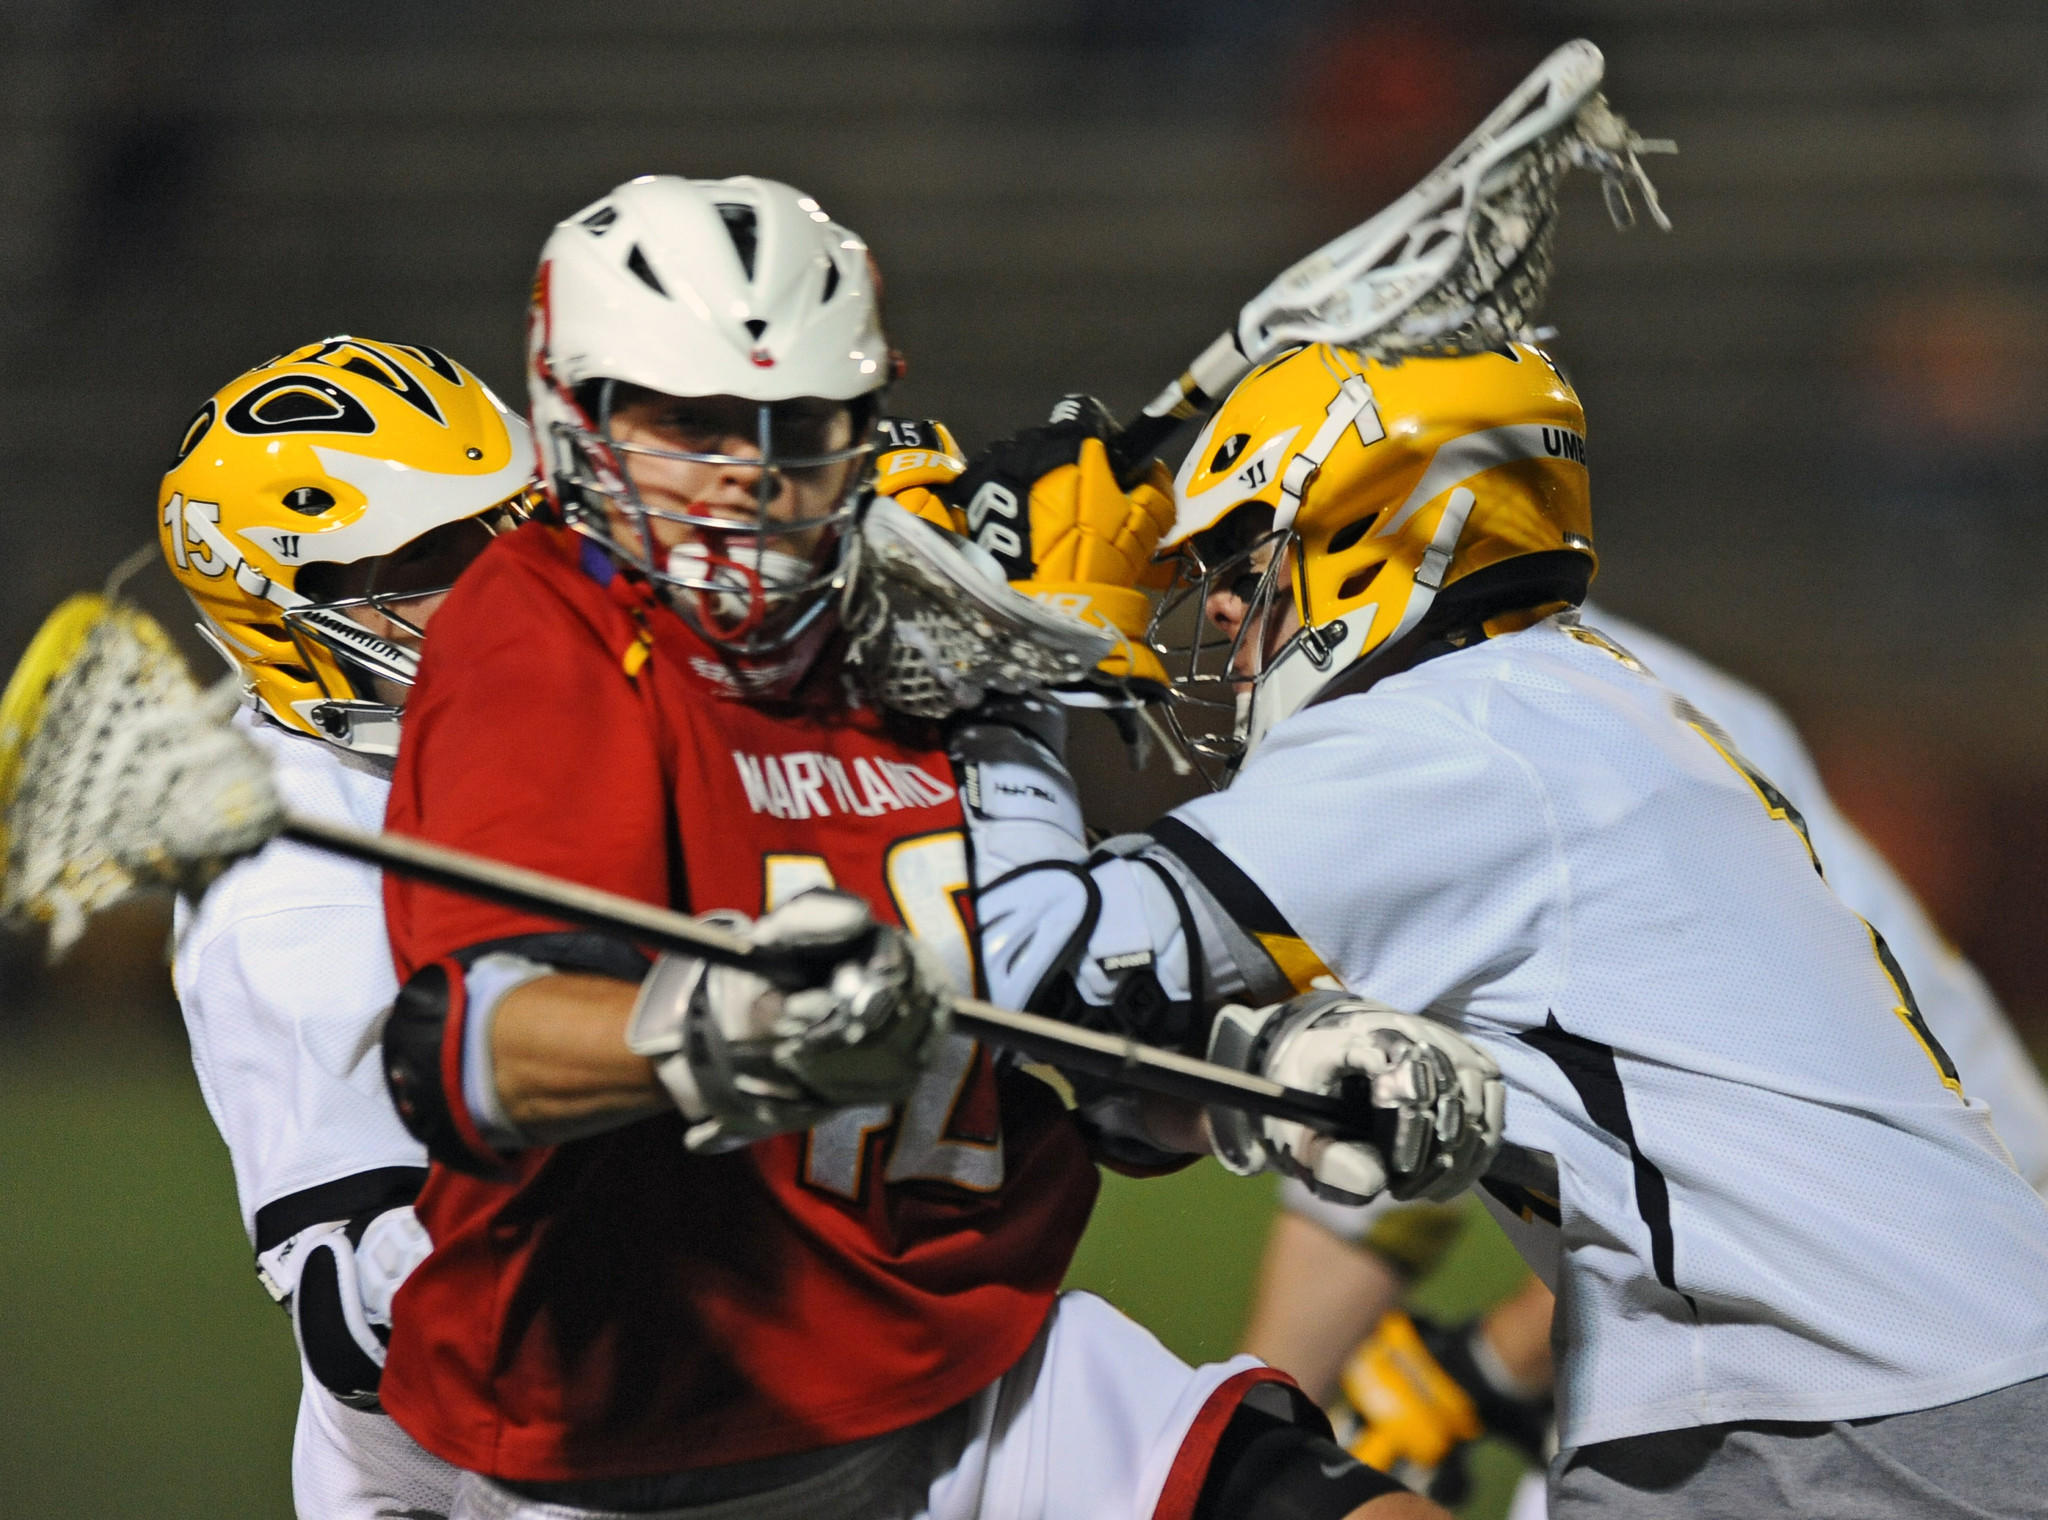 Maryland's Brian Cooper, center, is double-teamed by UMBC's Conor Finch, left, and Joe Lustgarten, right, in the second quarter of an eventual 8-7 Retrievers win in 2012.